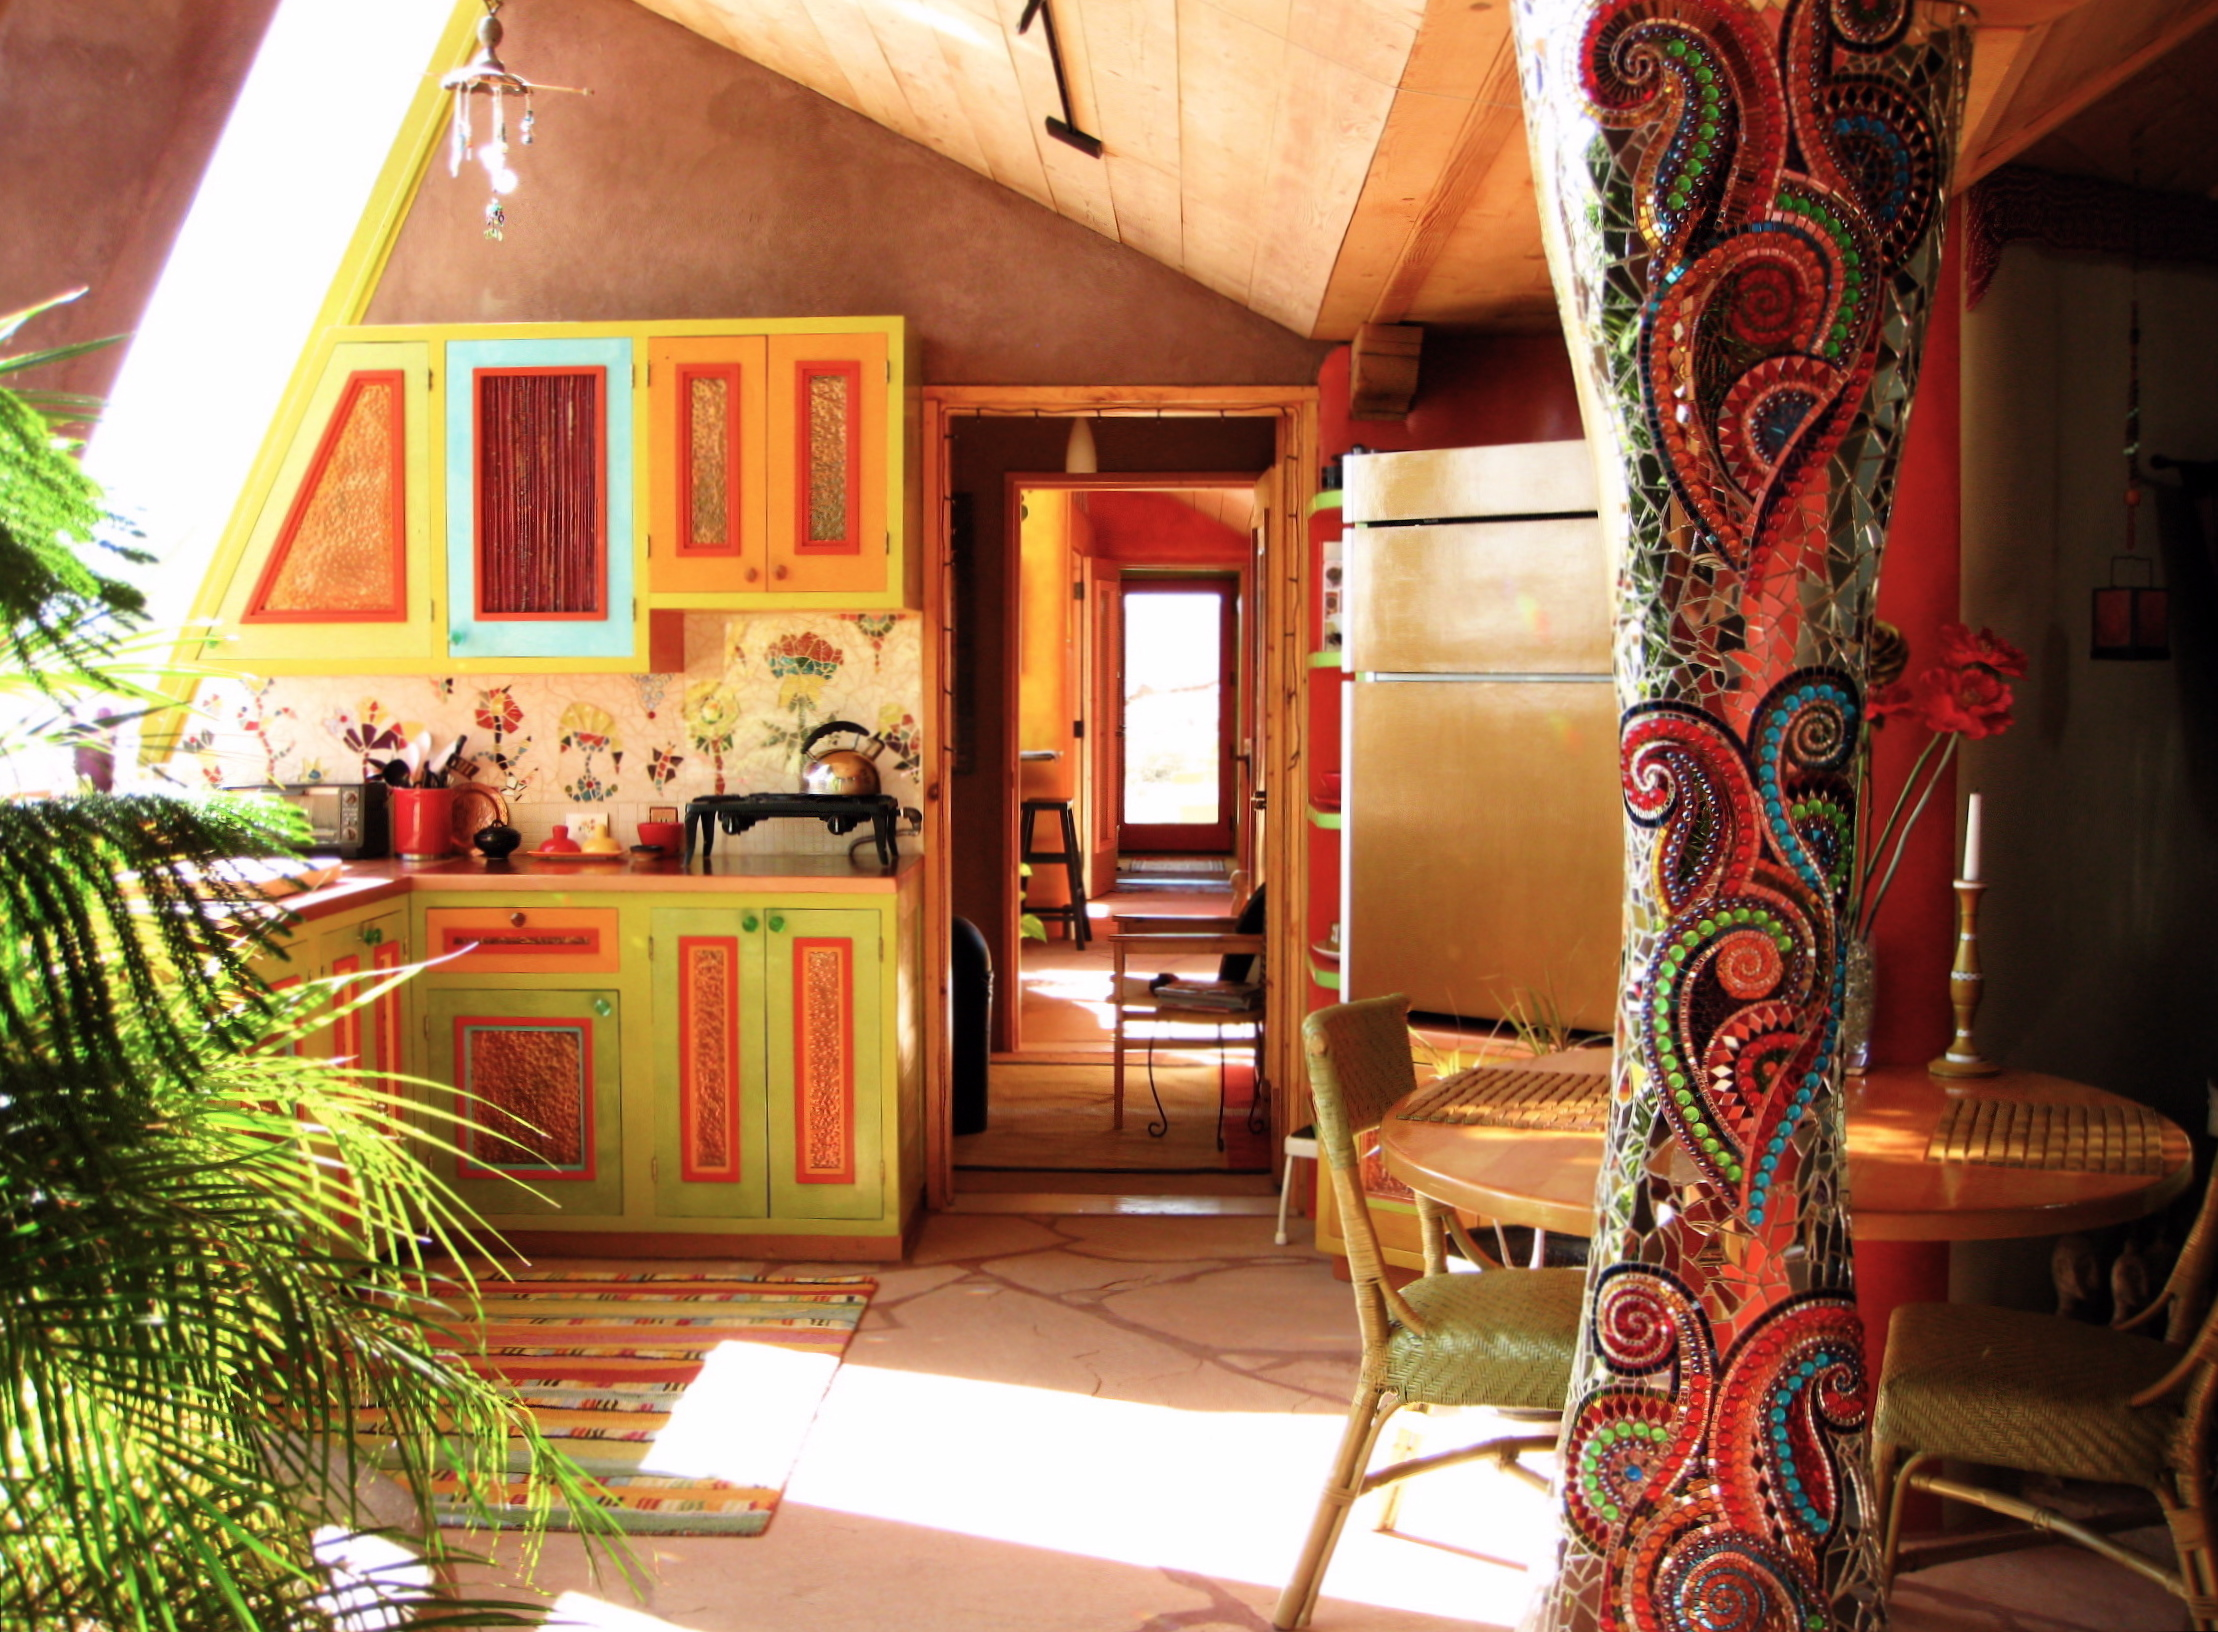 Interior of the Solaria Earthship in Taos, New Mexico Photo:  cc by-sa-3.0, Domenico, Karena